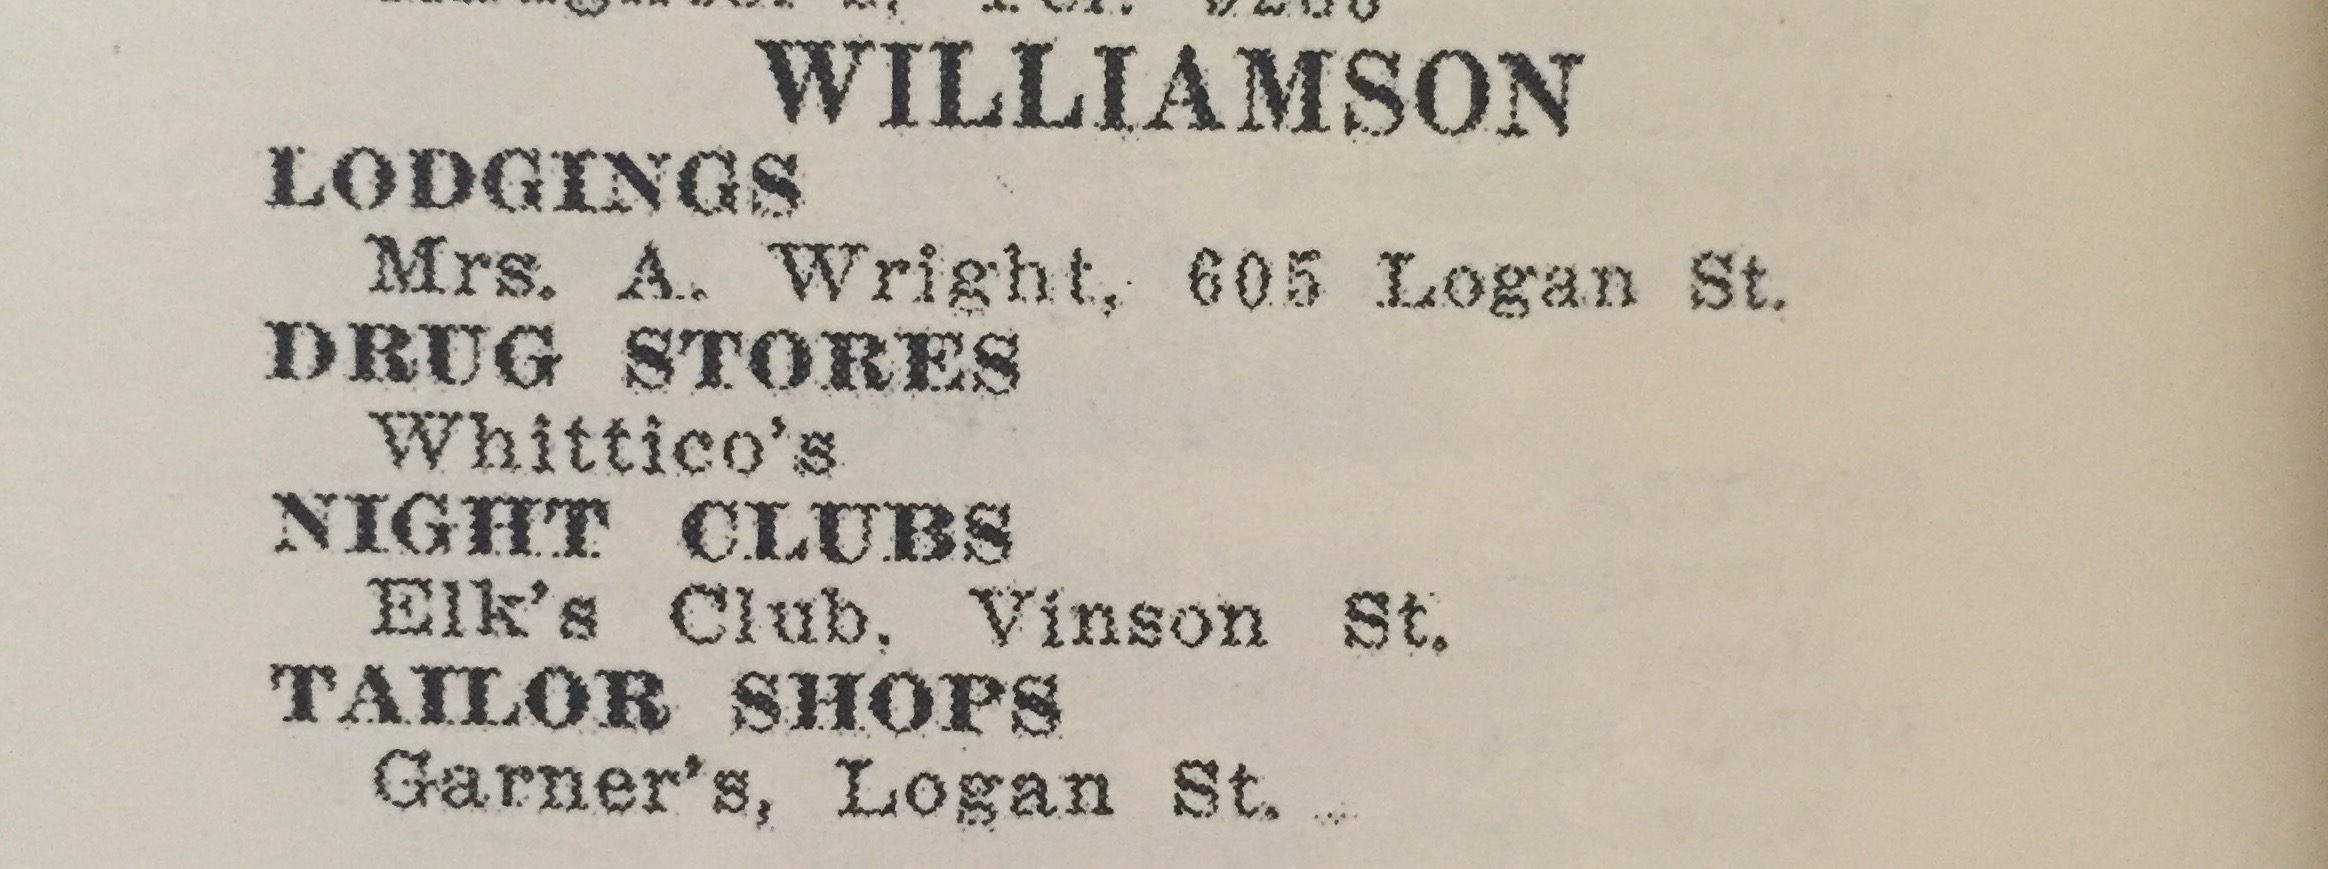 Other listings in the White Sulphur Springs area in the 1954 edition.